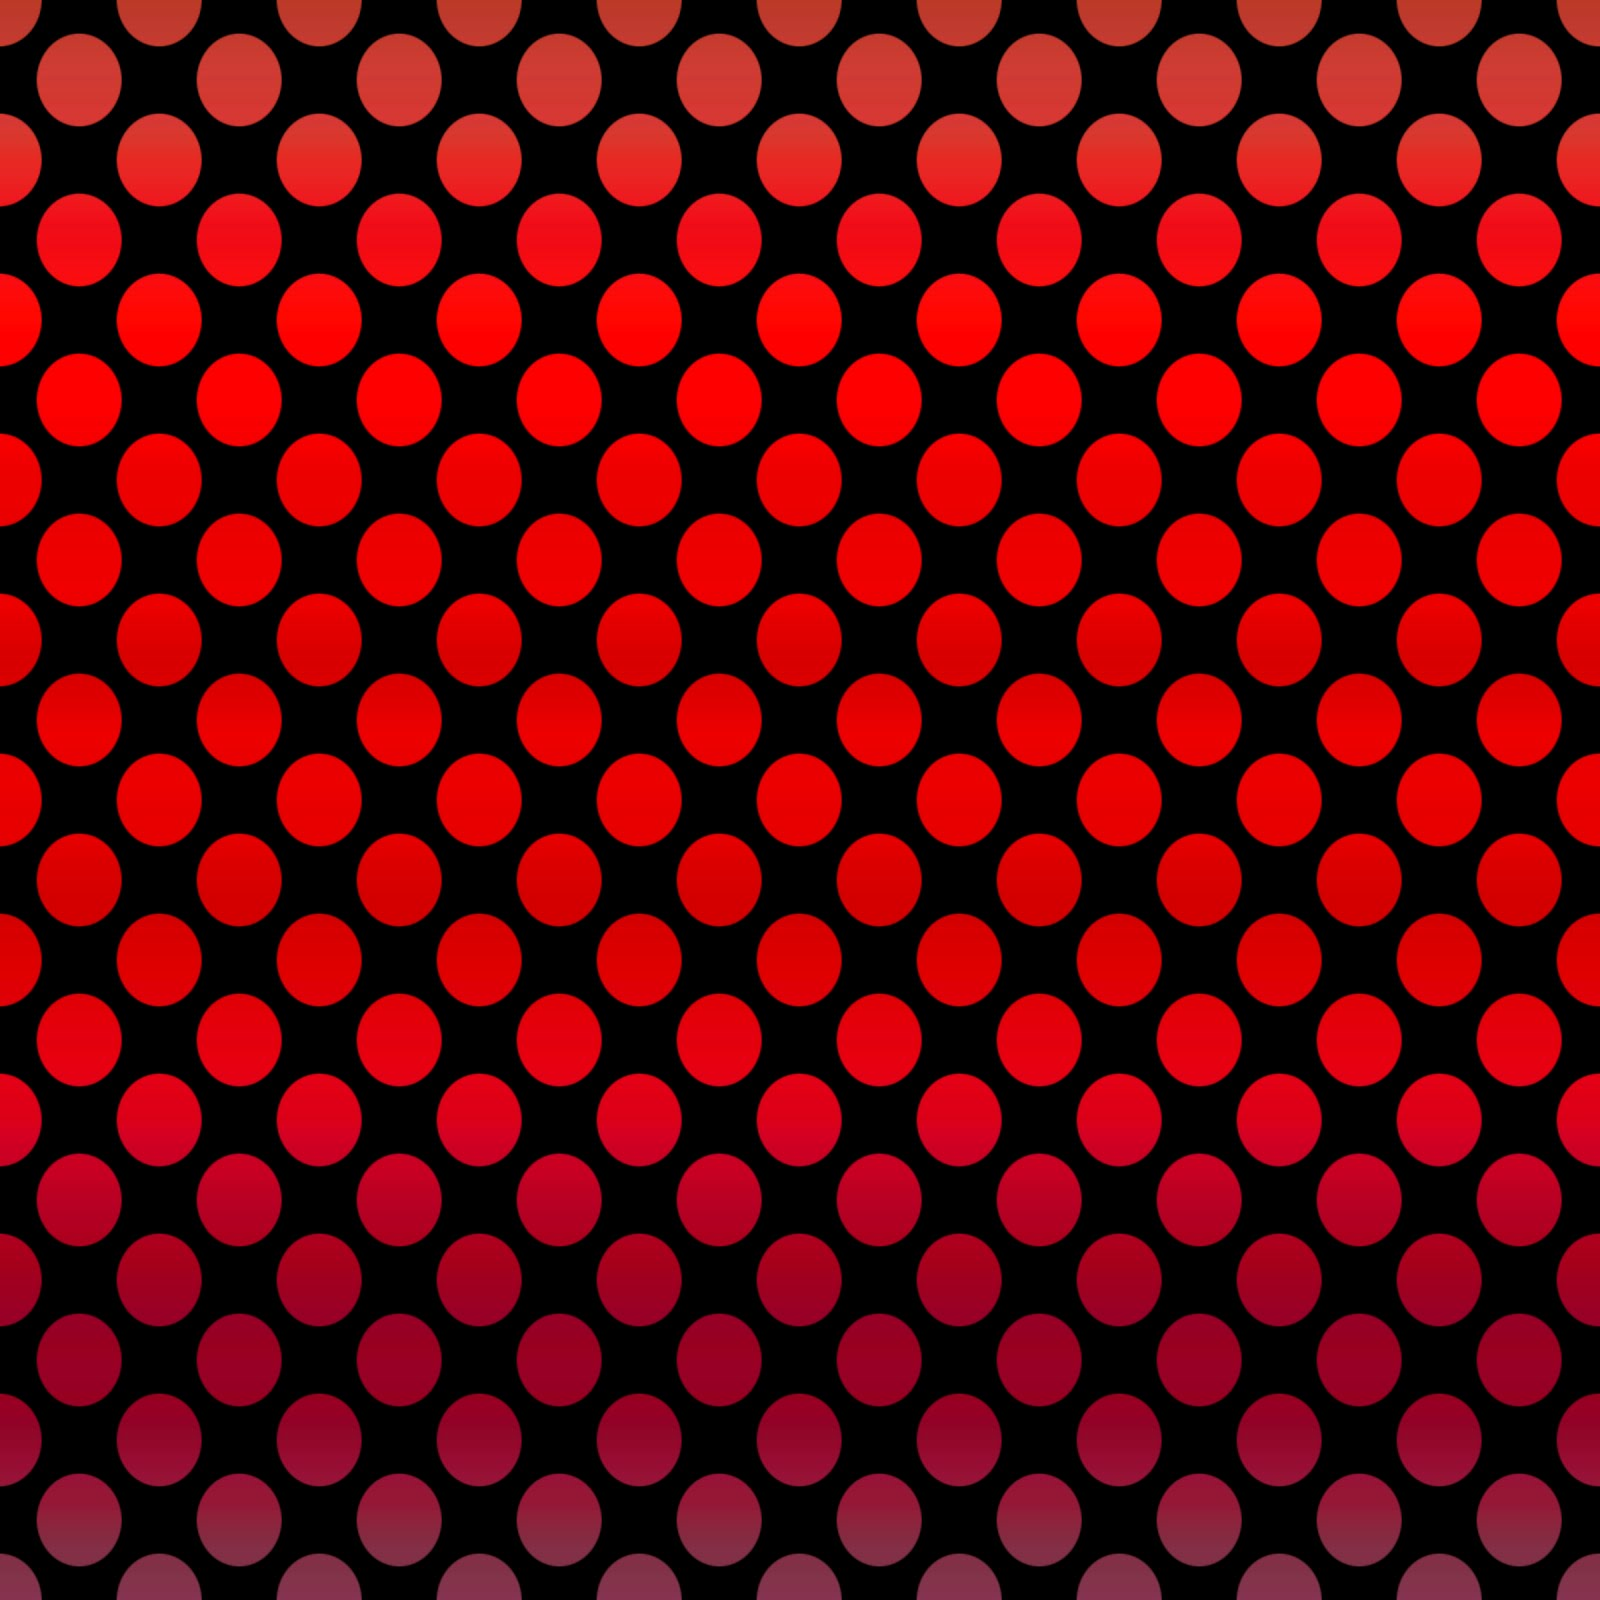 Red Dot Black Background Red And Black Polka Dots